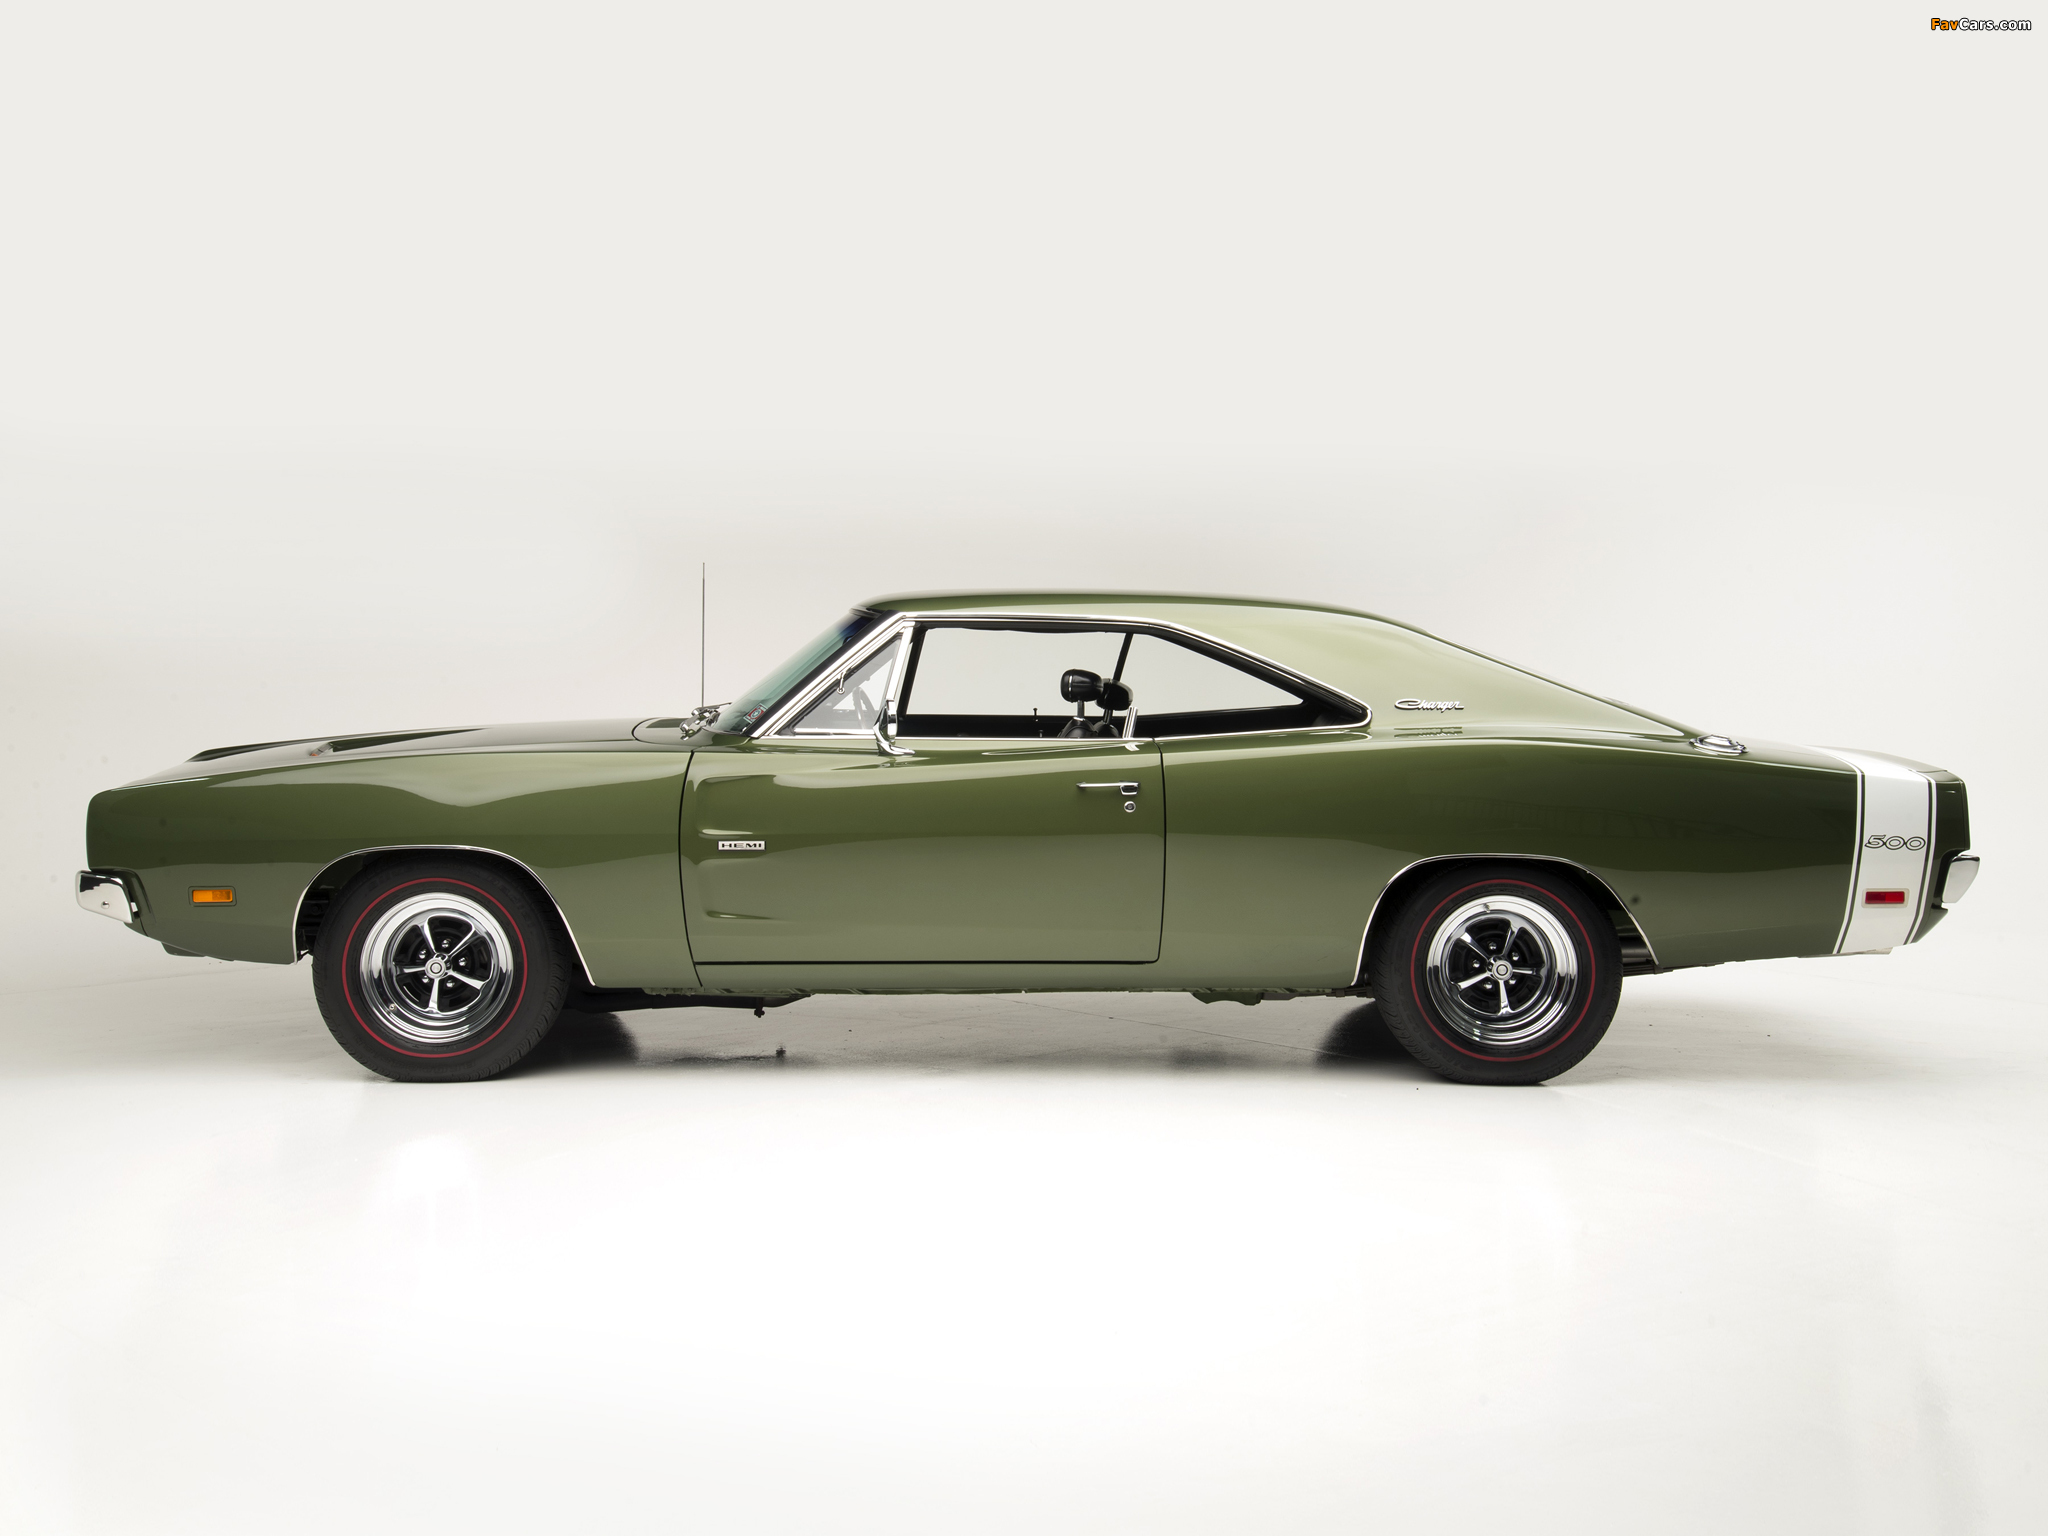 Dodge Charger 500 Hemi (XX29) 1969 pictures (2048 x 1536)